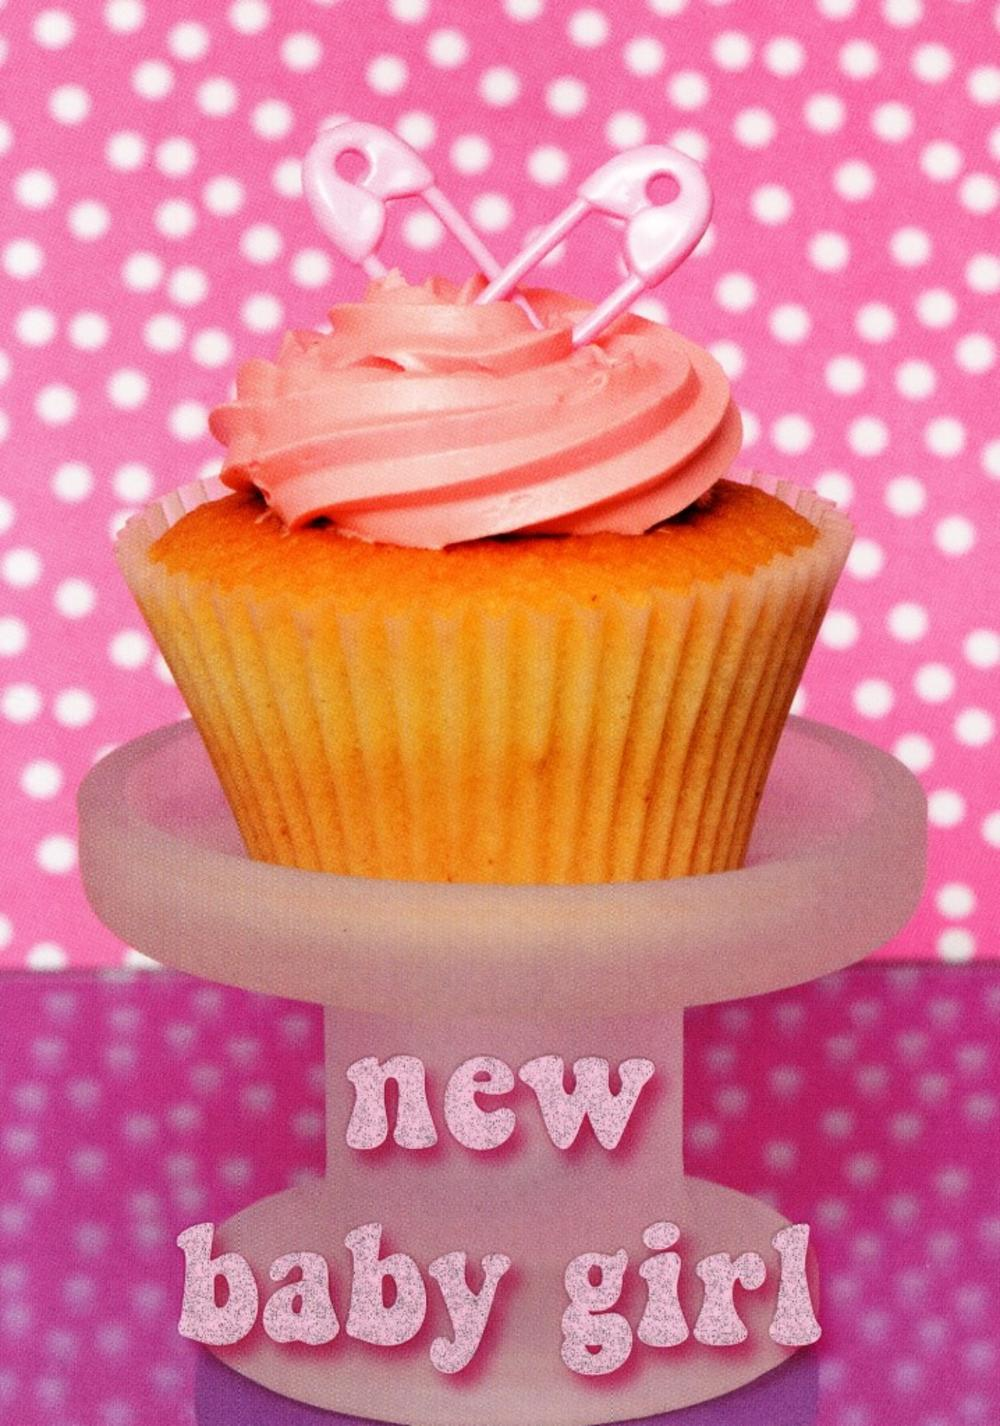 New Baby Girl Congratulations Cupcake Greeting Card